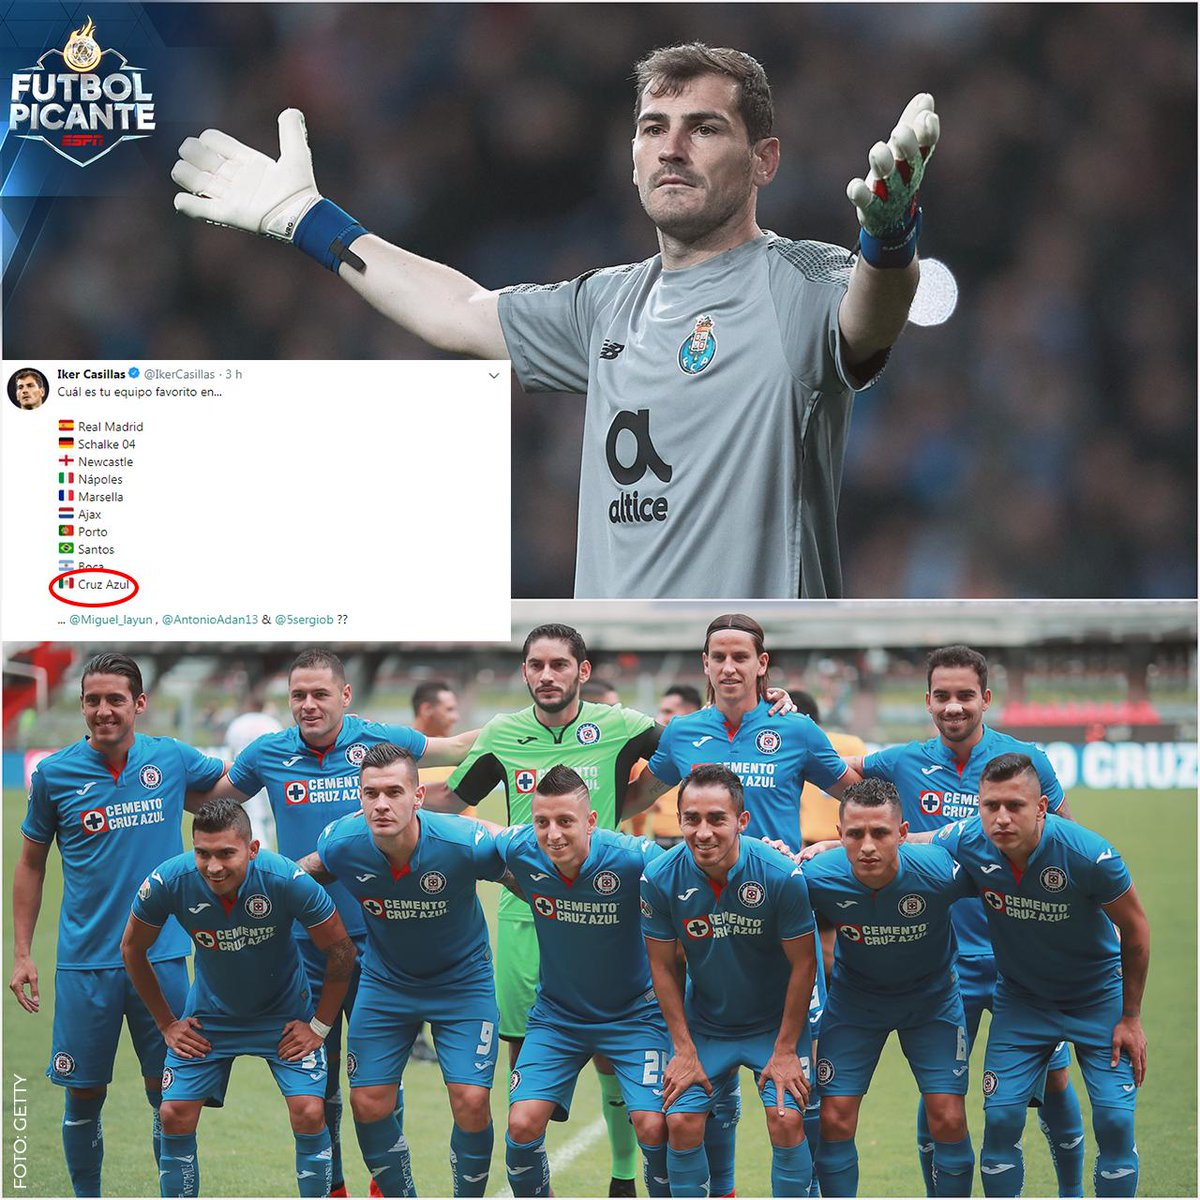 Futbol Picante's photo on Iker